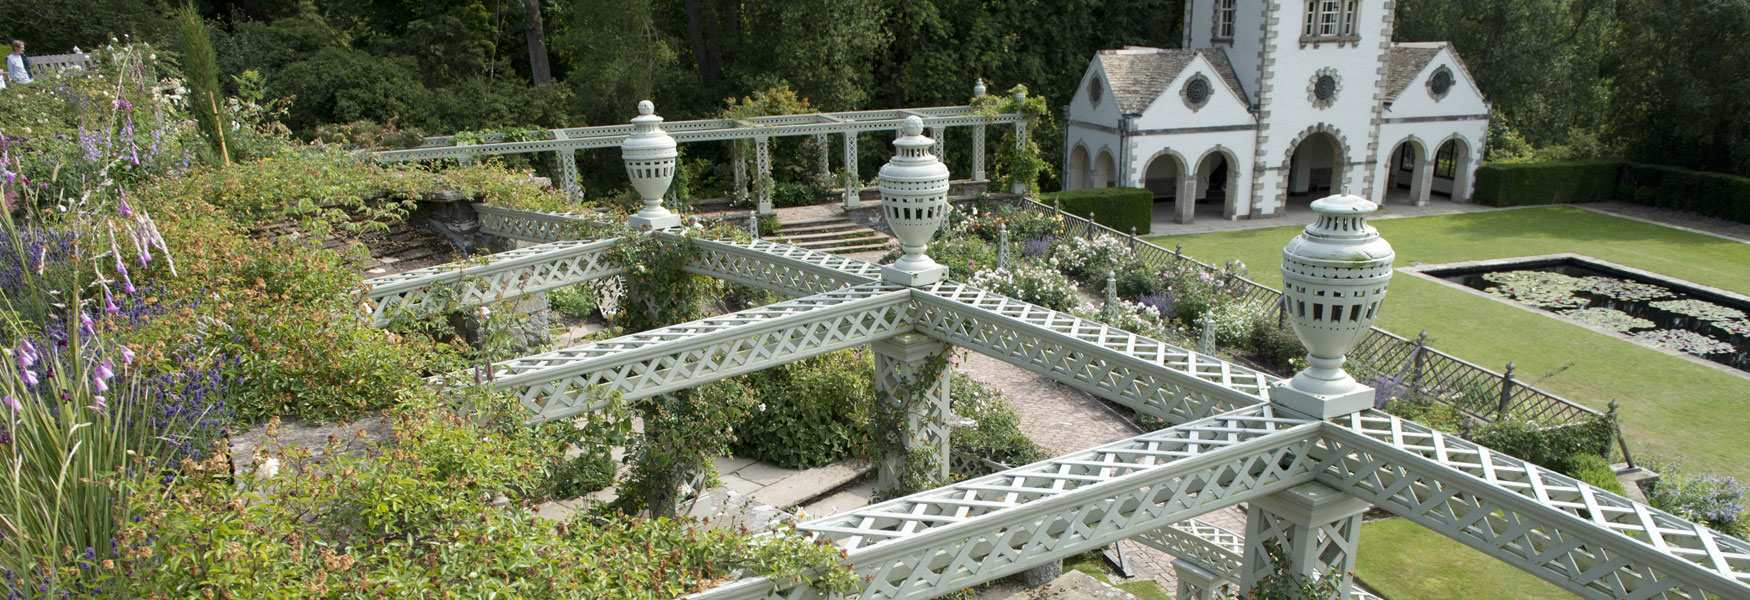 Parks & Gardens in North Wales - GoNorthWales.co.uk